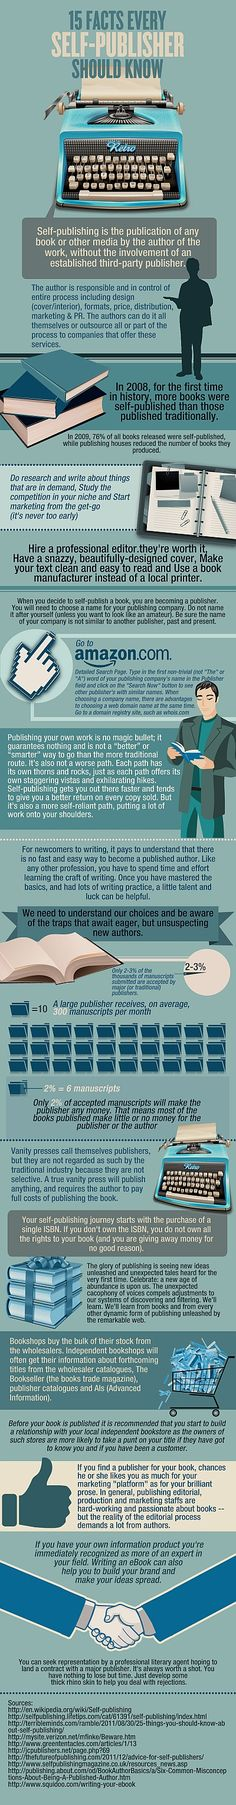 15 facts every self-publisher should know #infographic